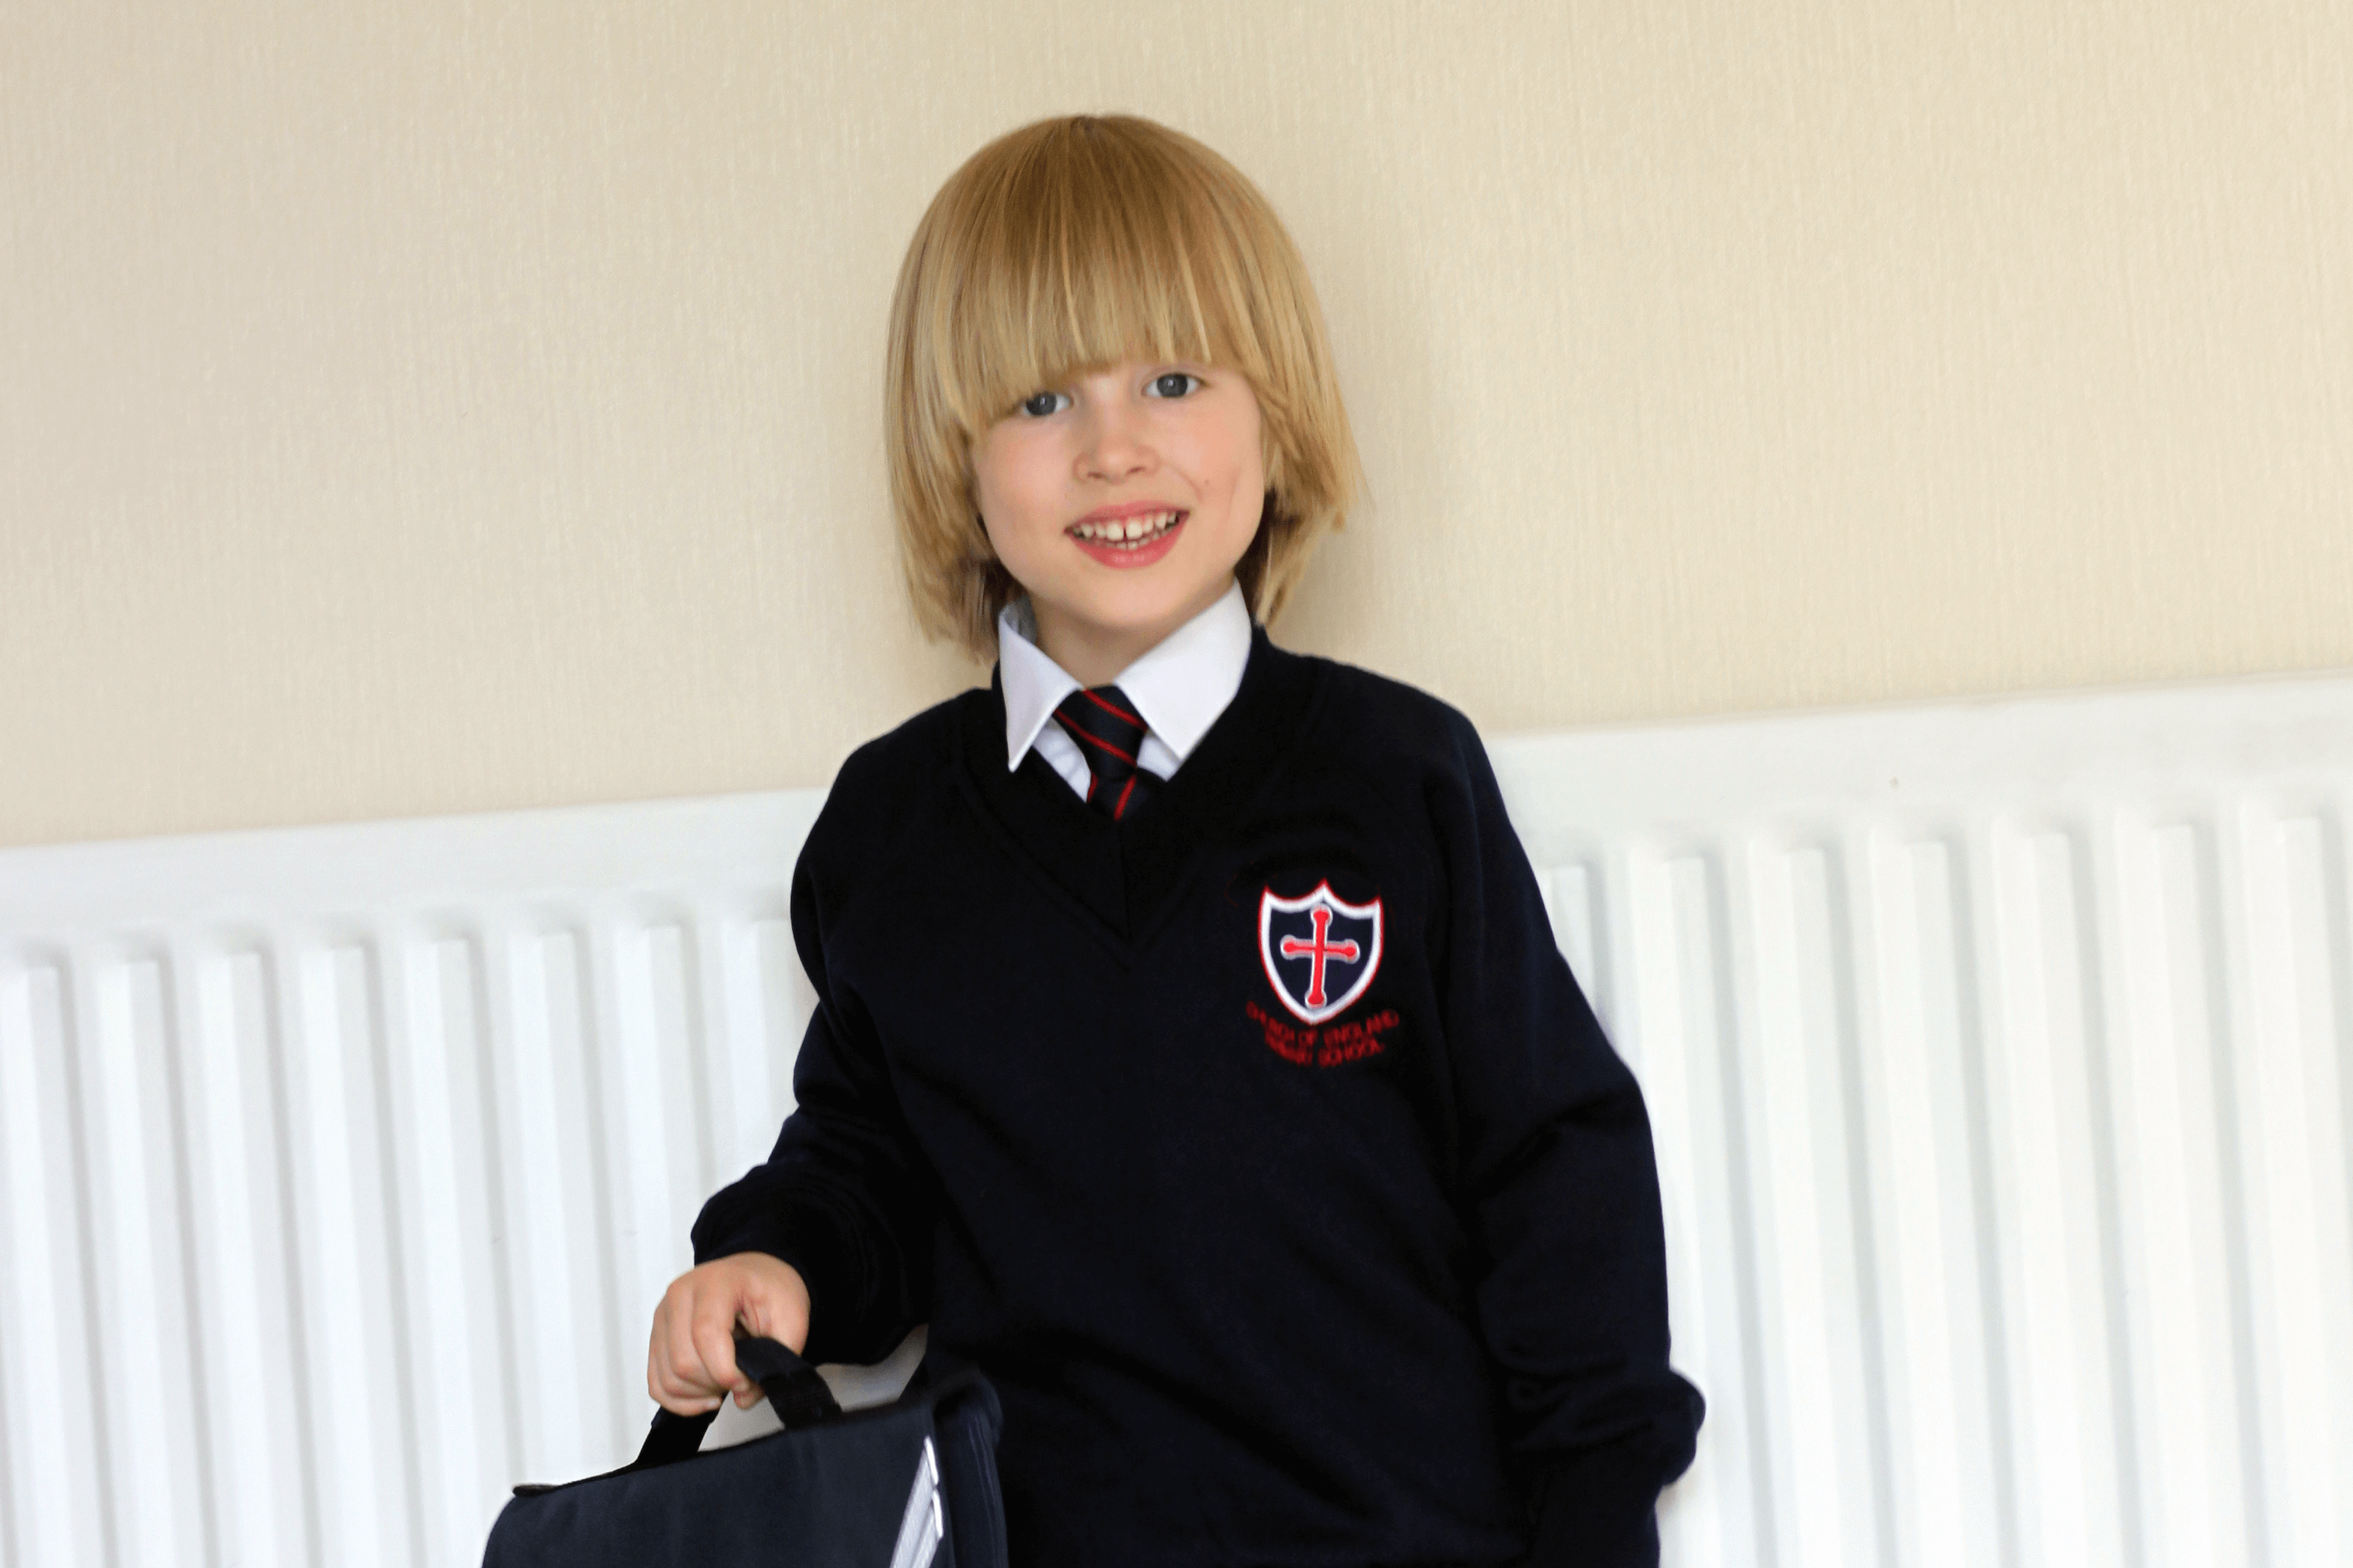 Toby looking super smart in his school uniform